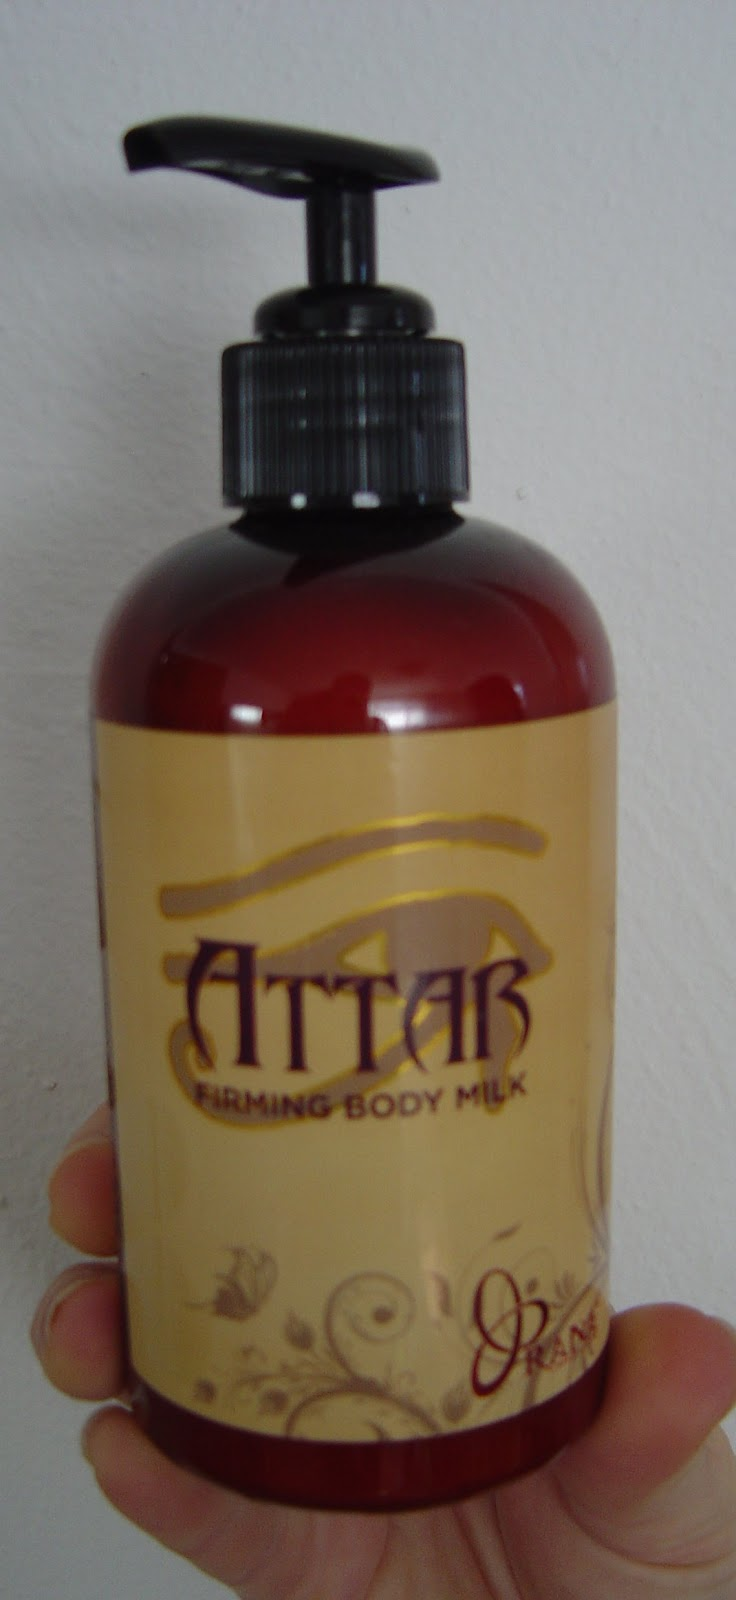 Prana SpaCeuticals Attar Firming Body Milk.jpeg